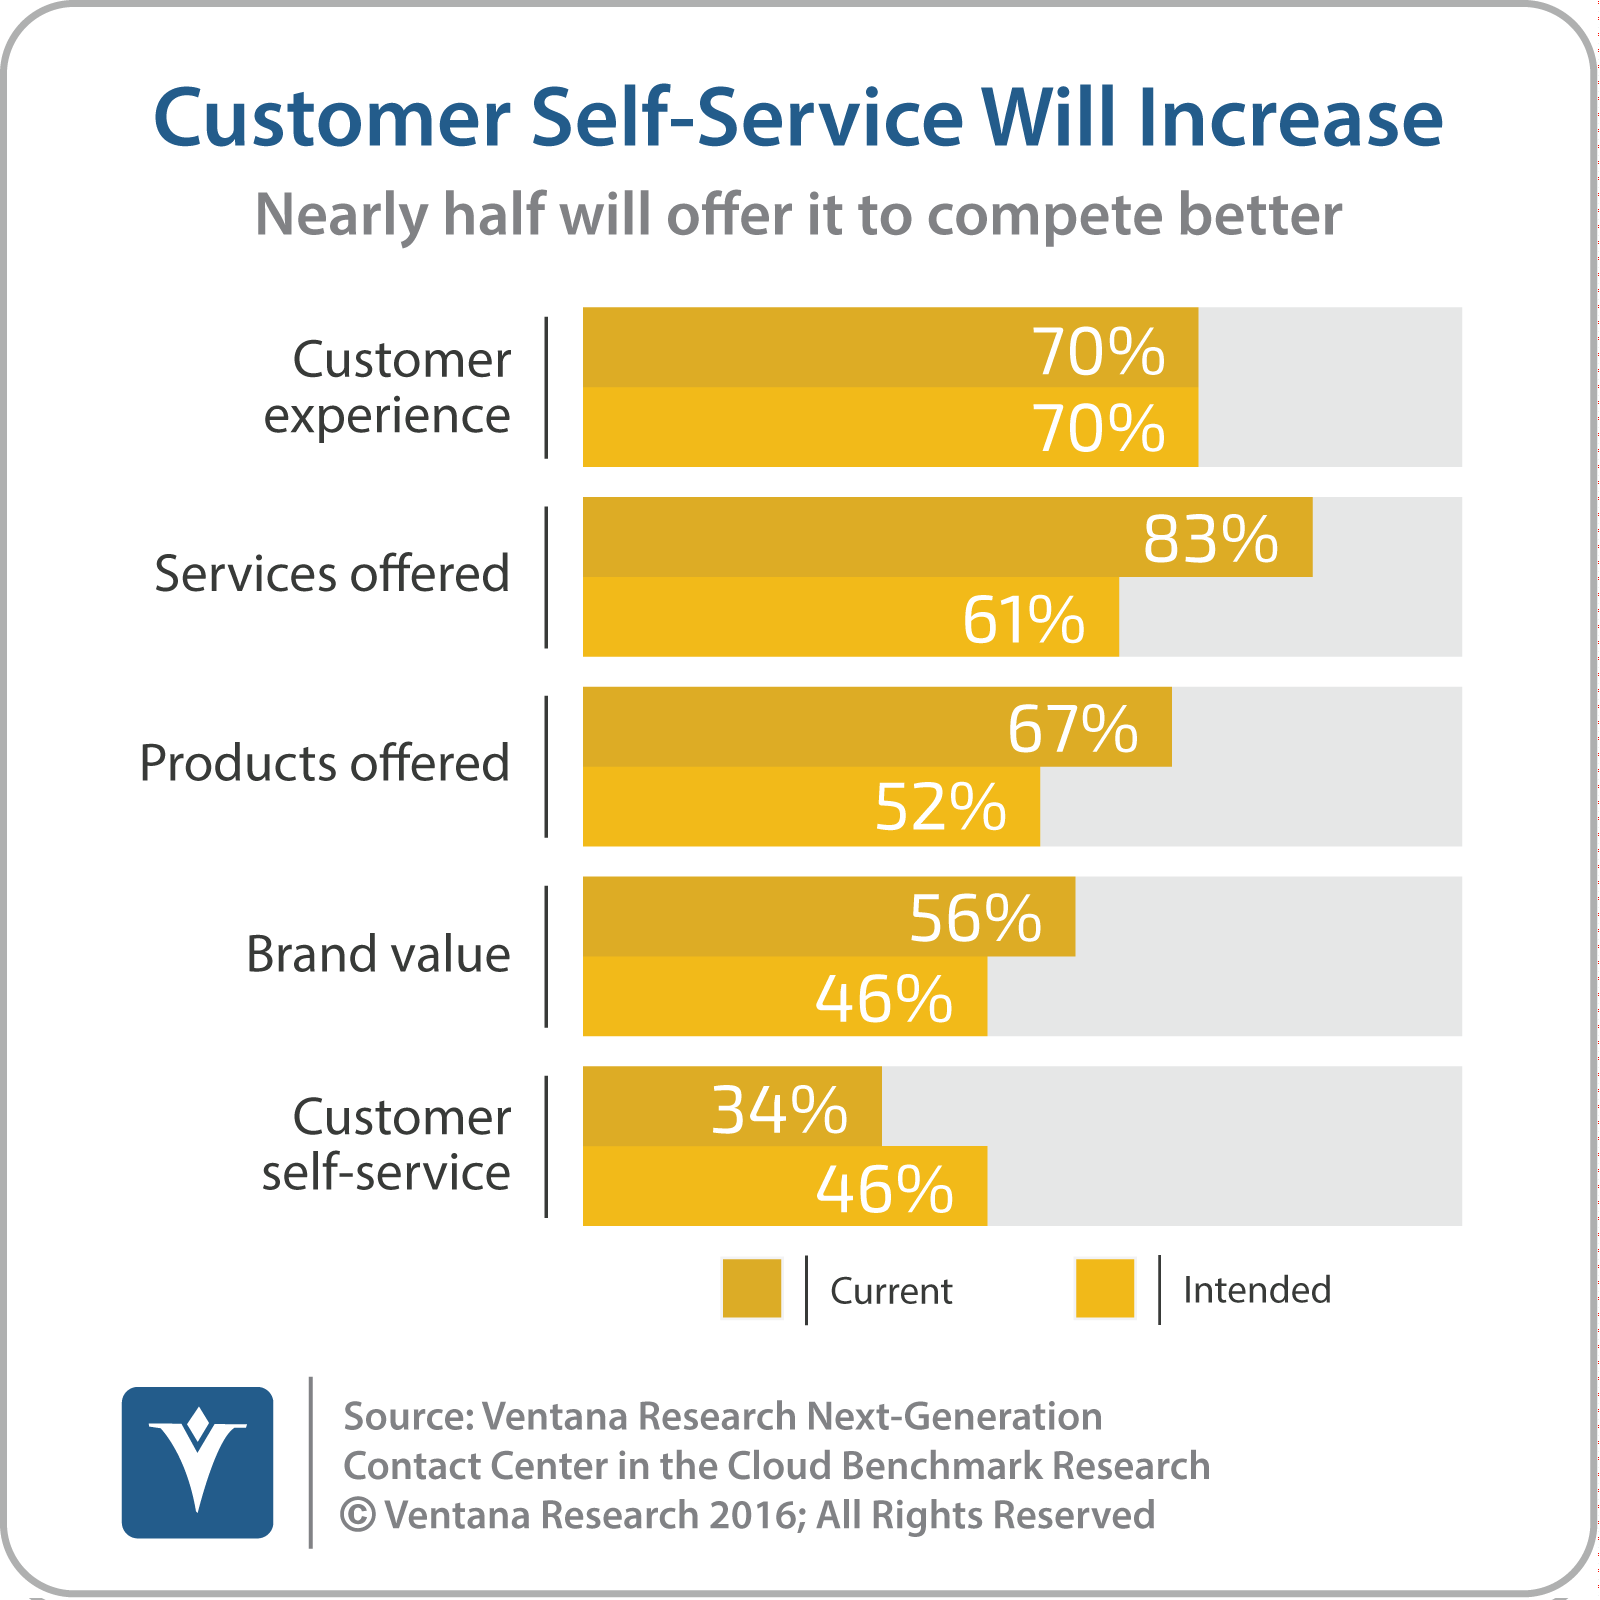 vr_NGCCC_01_customer_self_service_will_increase_updated-4.png